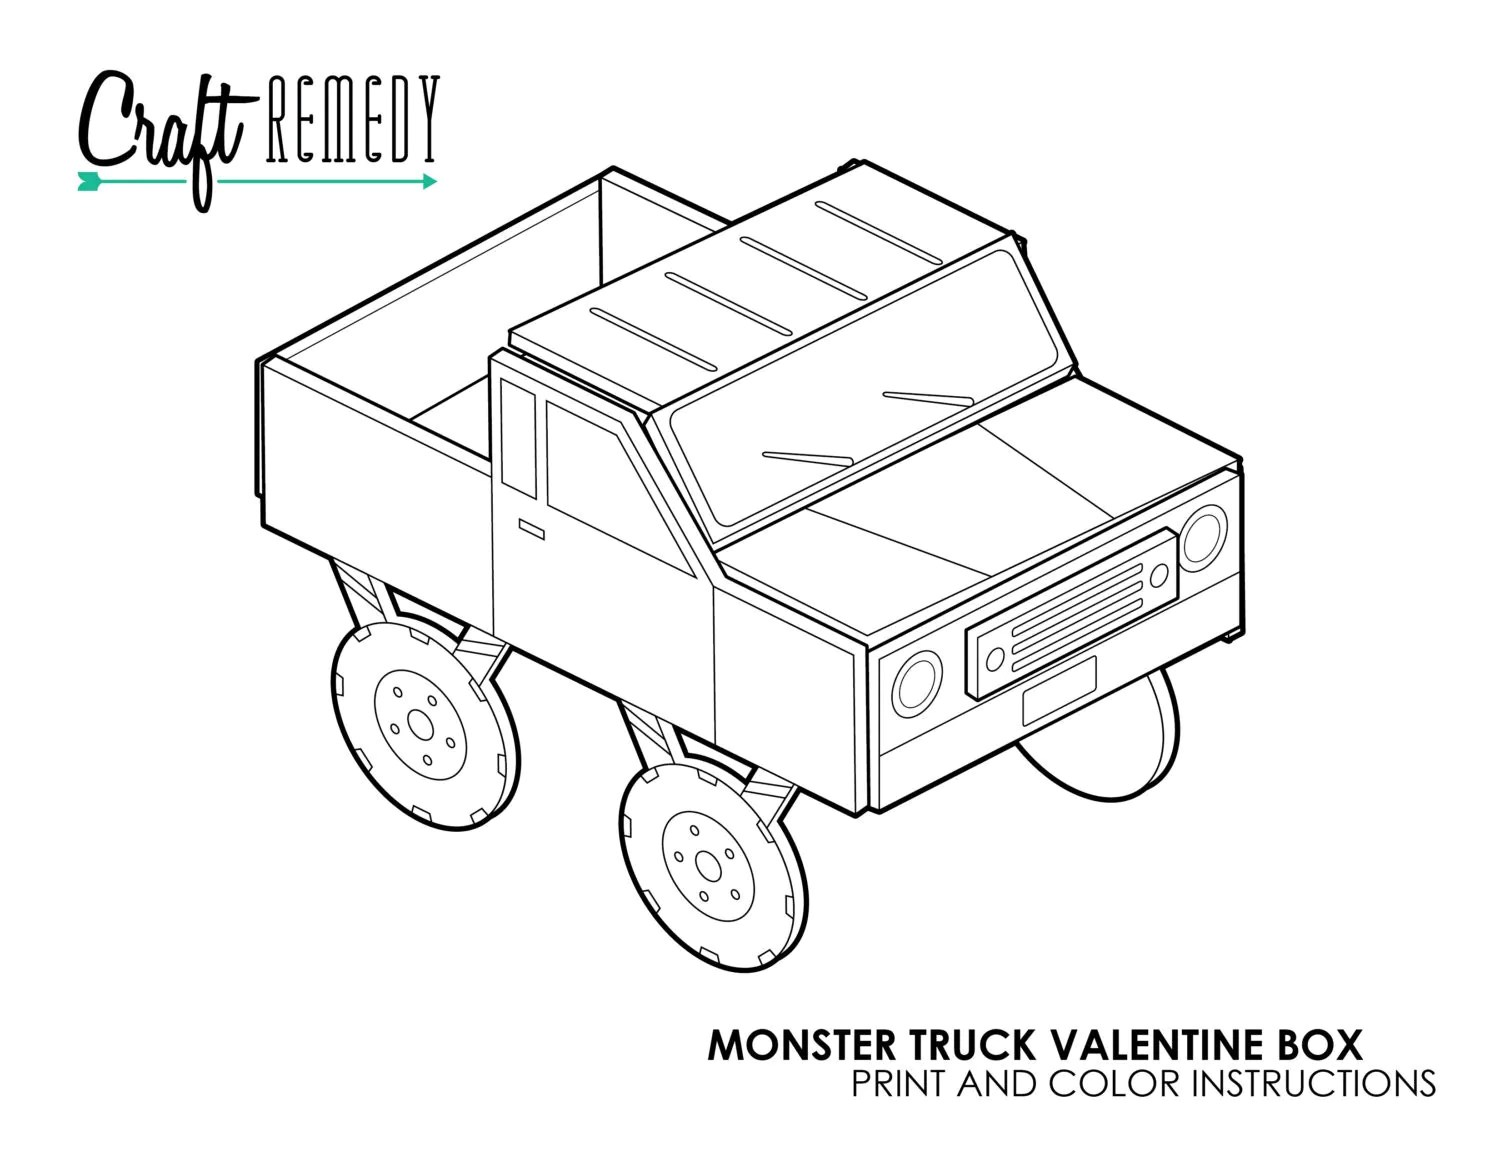 Monster Truck Valentine Box Instructions Digital Art File